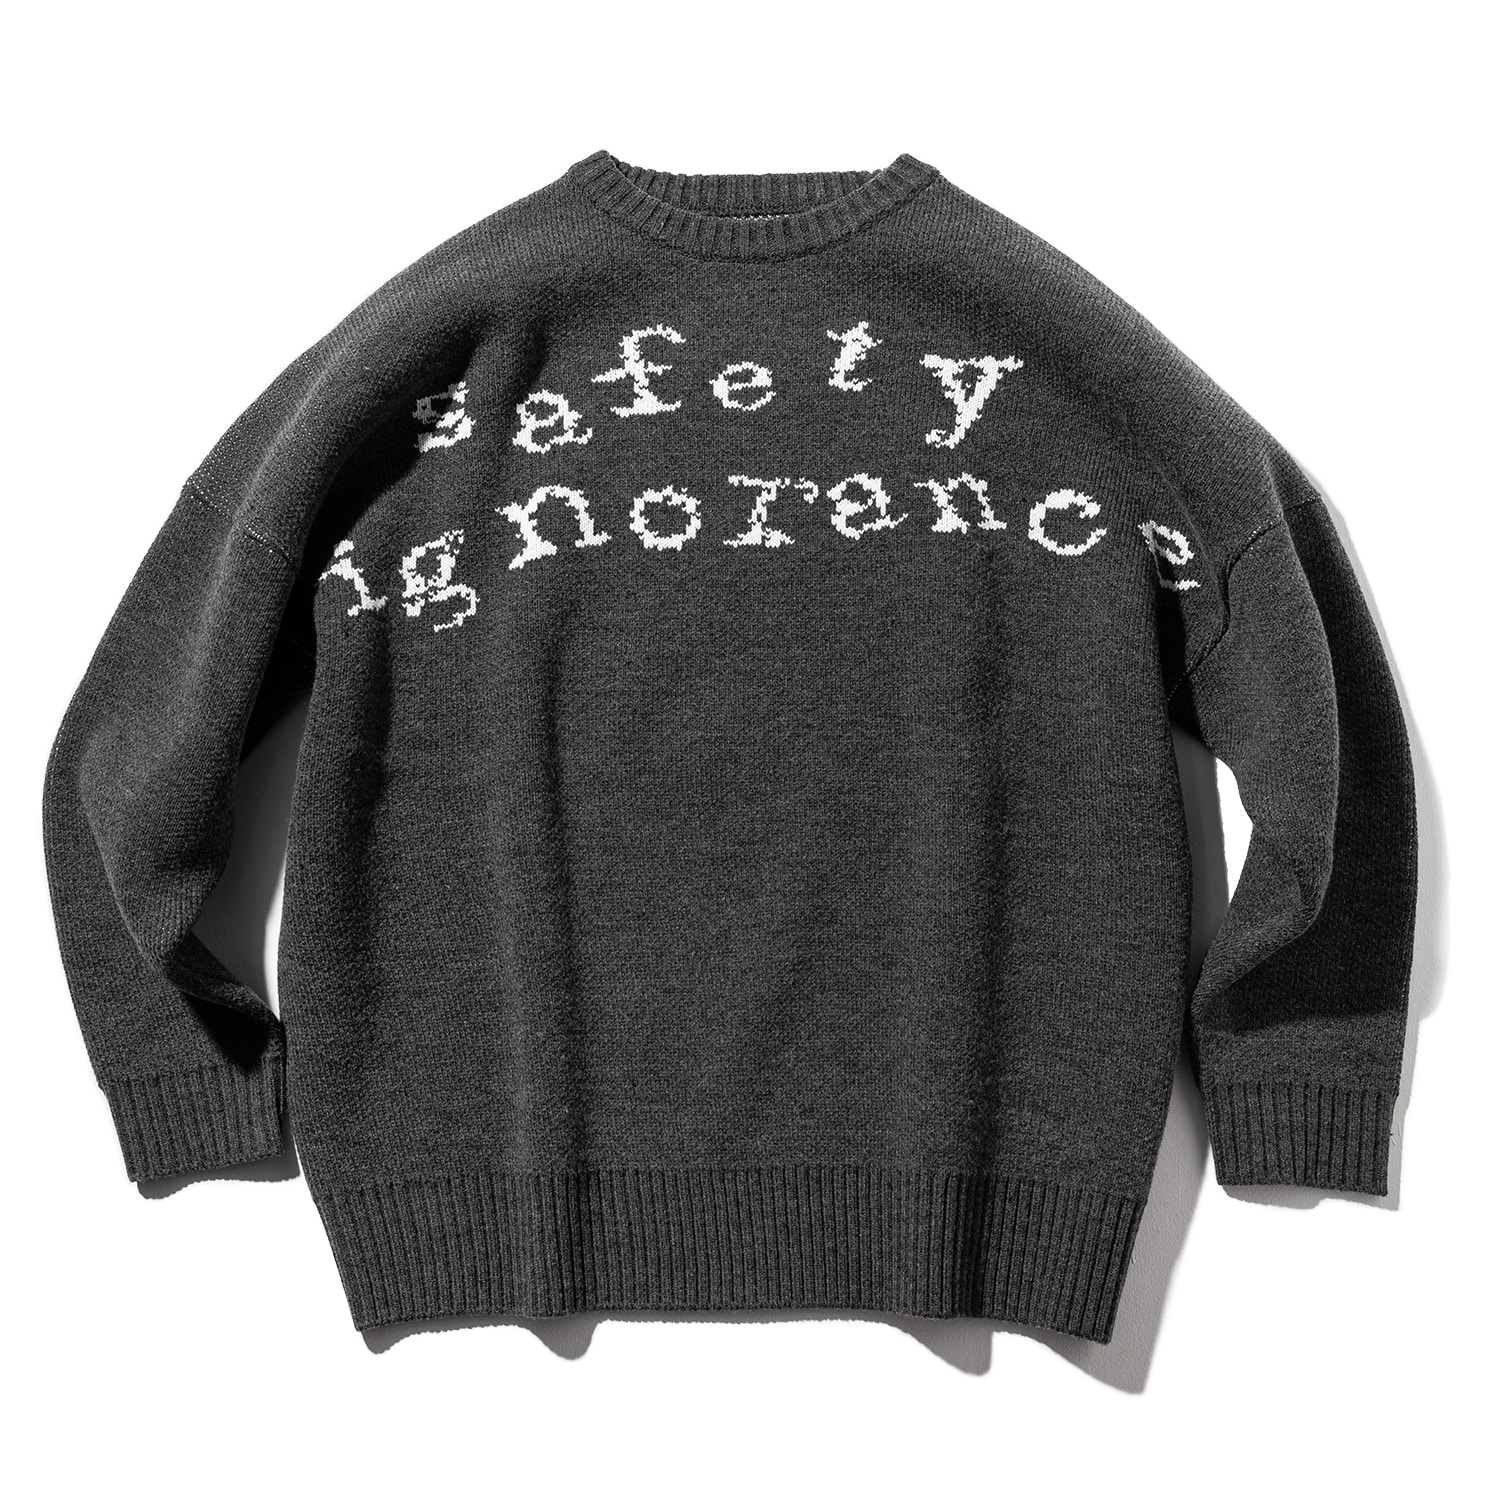 SAFETY LETTERING WOOL KNIT MWZNT001-DG